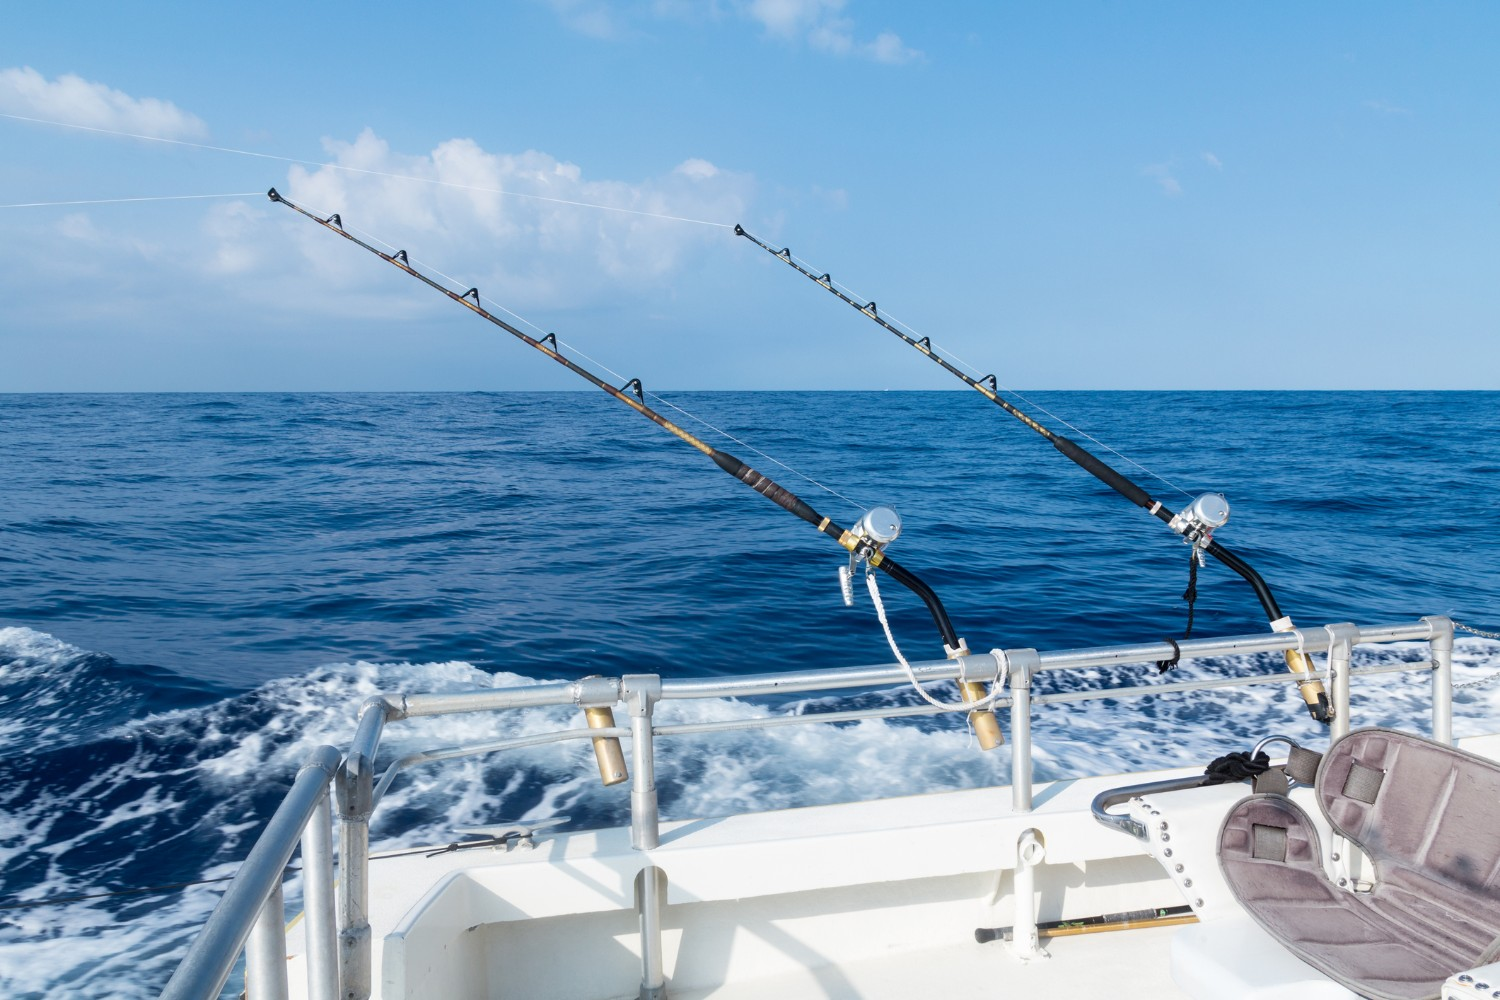 Sport fishing with two salt water rods and reels. Deep sea fishing in the ocean on a sunny blue sky day with fluffy clouds.